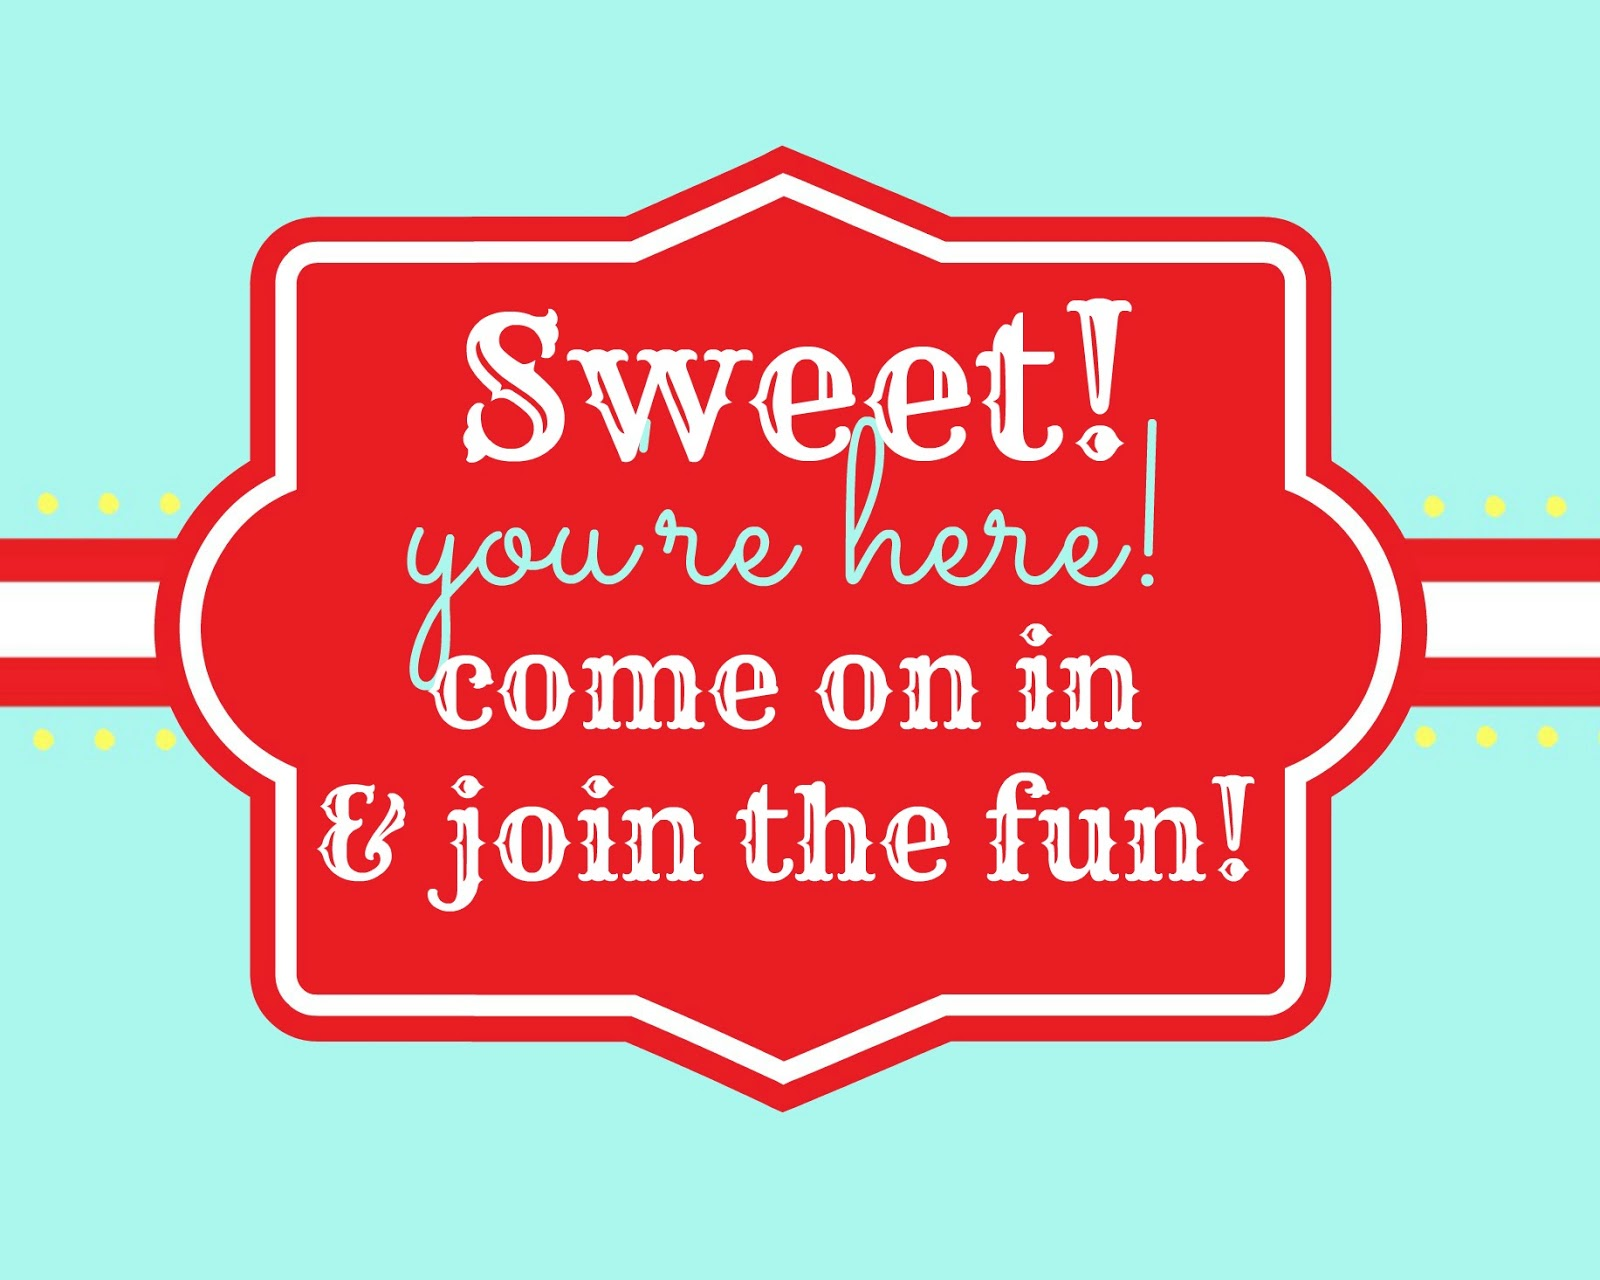 Sweet Be's Candy and Gifts. The shop is a treasure trove of assorted confections, gourmet chocolates, snack treats, retro candies, custom color M&M's, Jelly Belly's, adorable stuffed animals, personalized gifts, special candy bouquets and a variety of interesting and fun gifts.